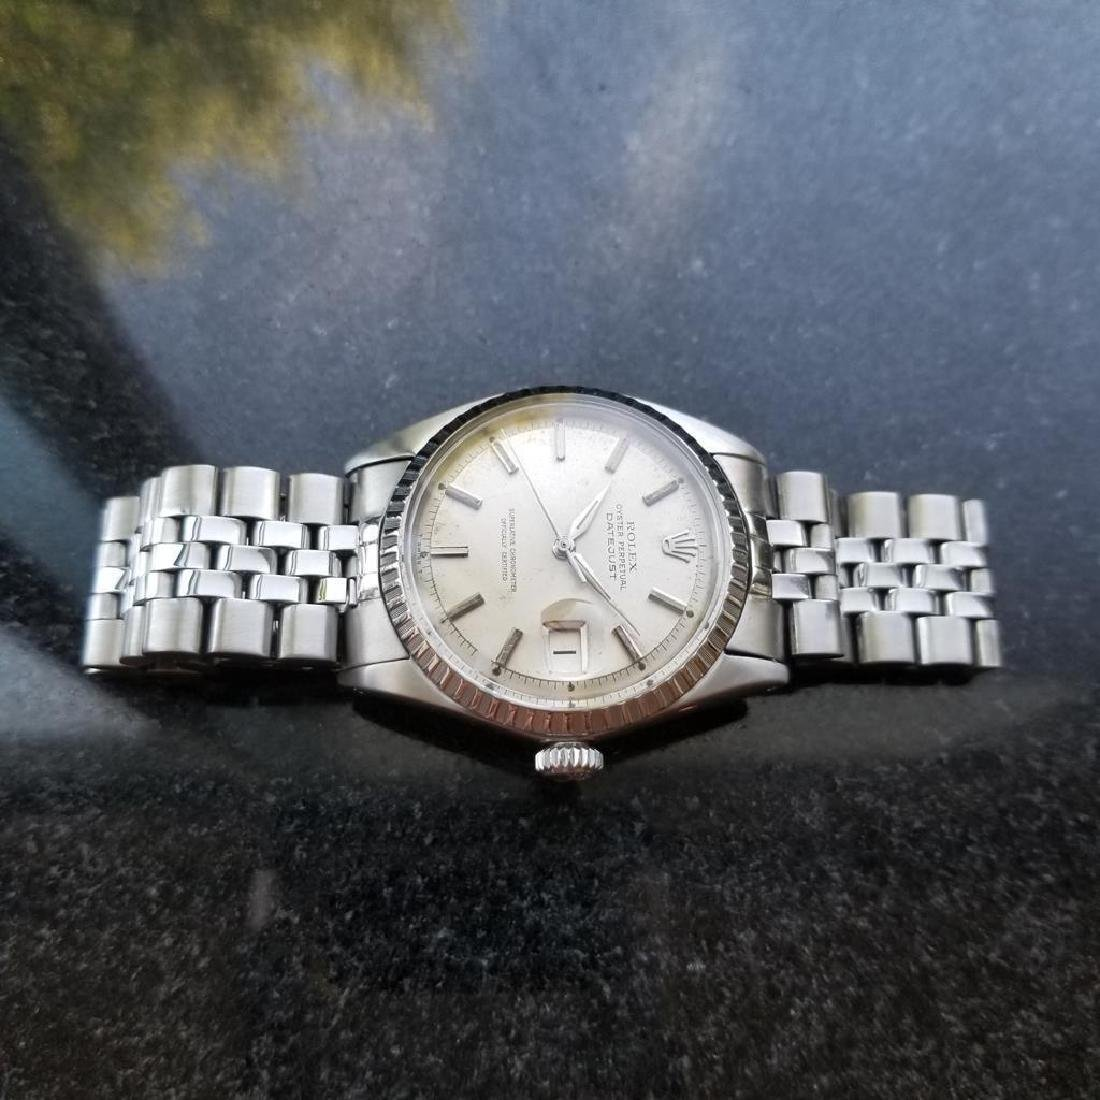 ROLEX Men's Datejust 1603 Automatic c.1965 Stainless - 5